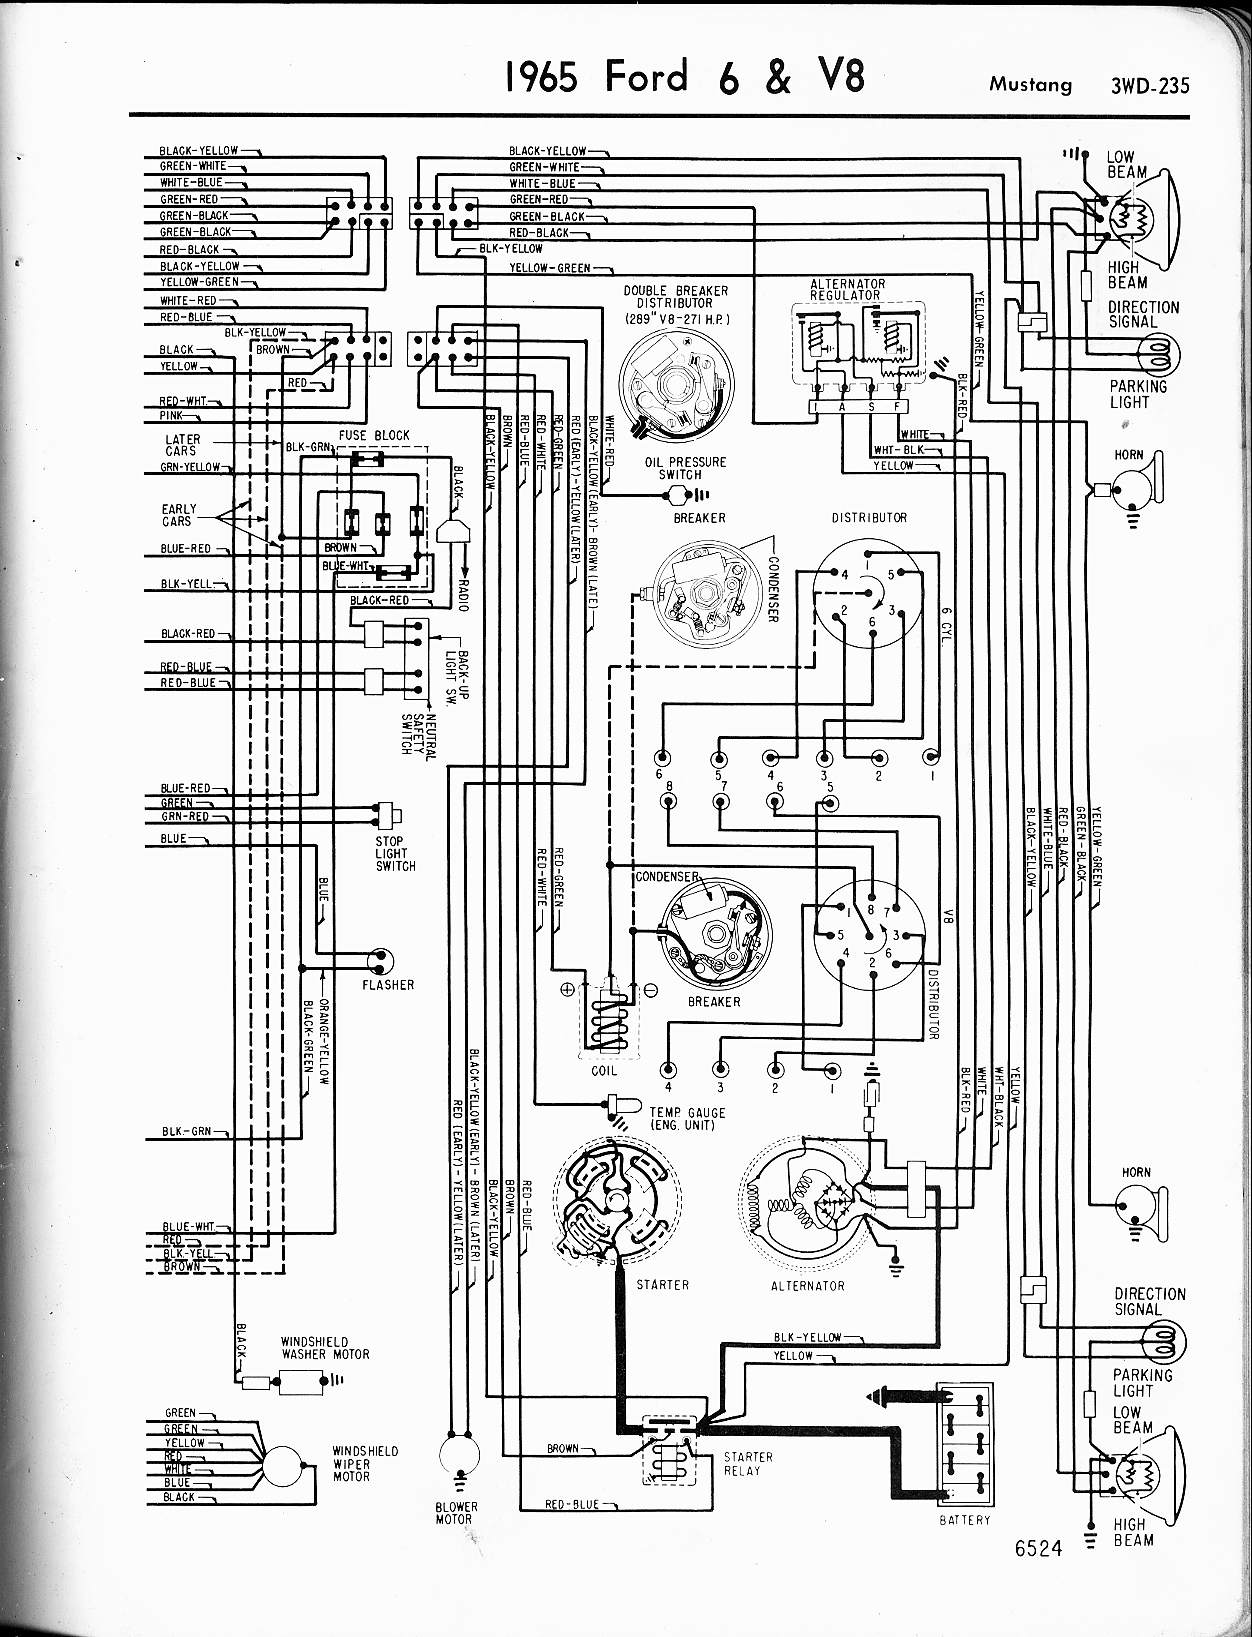 65 Ford Wiring Diagram Data 1969 Camaro Air Conditioning 57 Diagrams 1966 Ignition Switch 1965 6 V8 Mustang